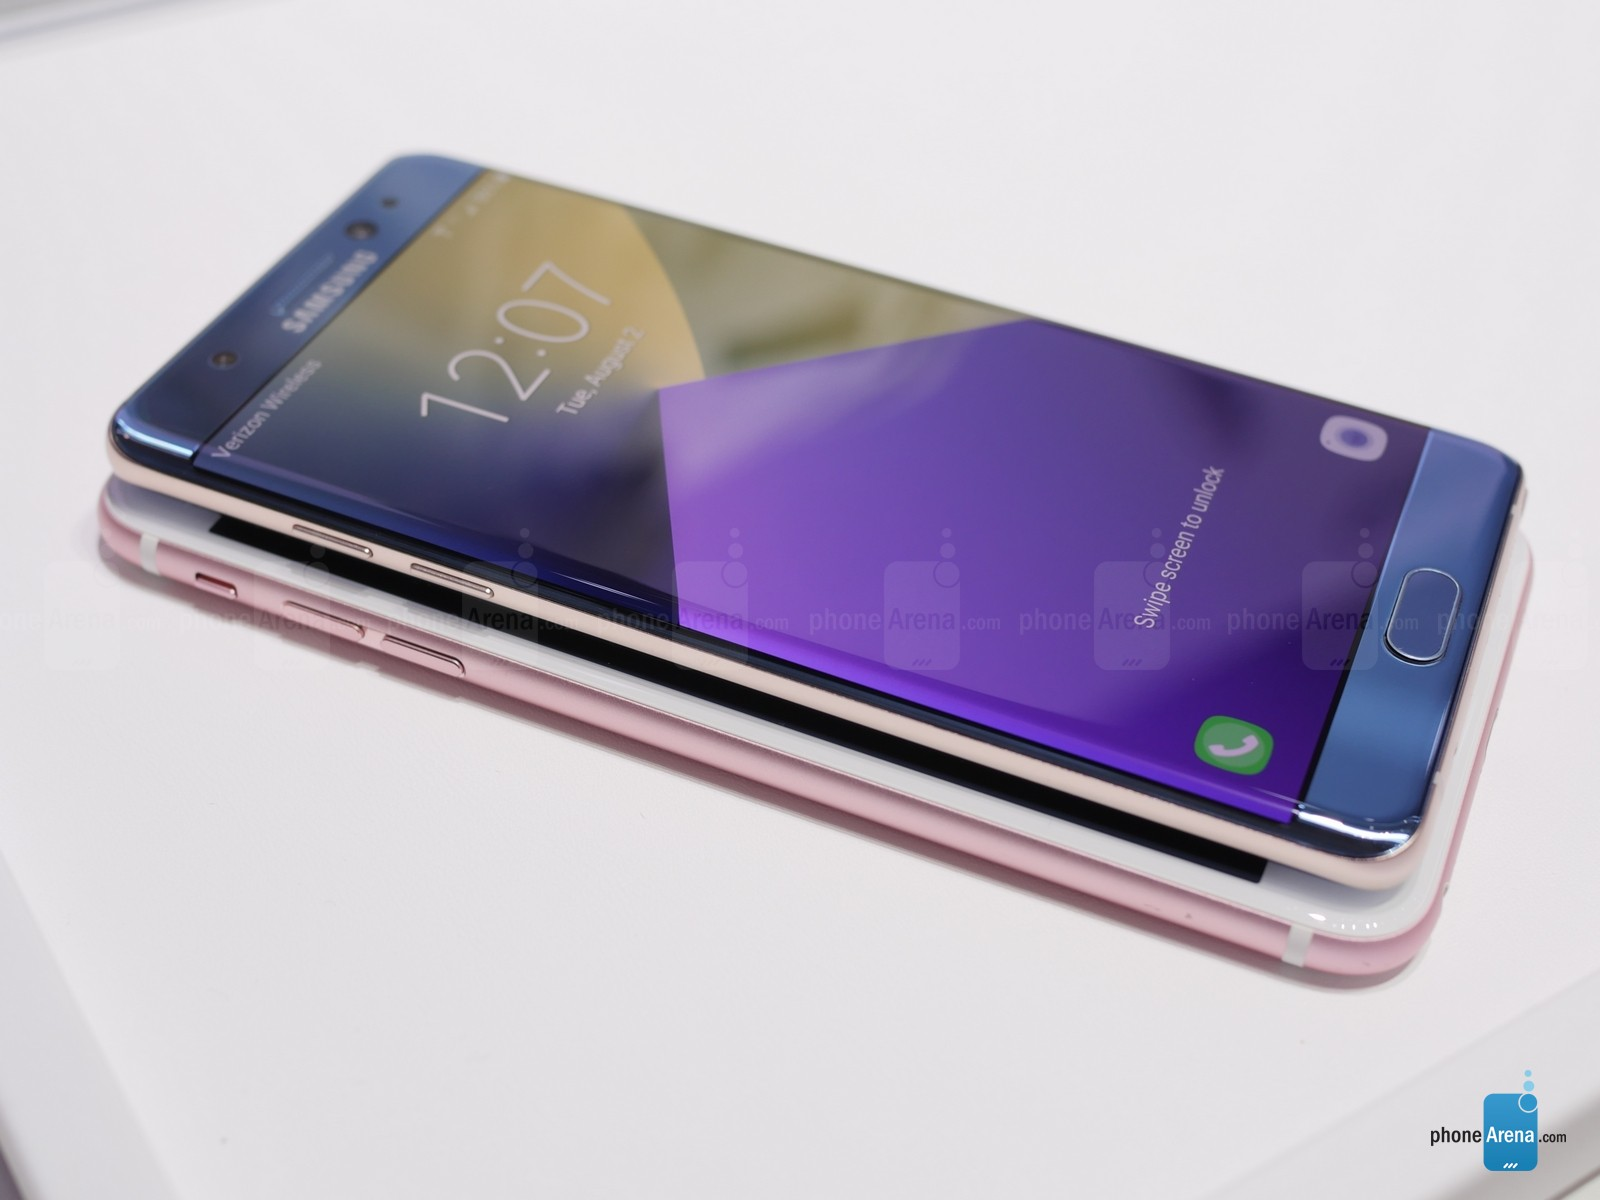 Samsung-Galaxy-Note-7-vs-Apple-iPhonfgfge-6s-Plus